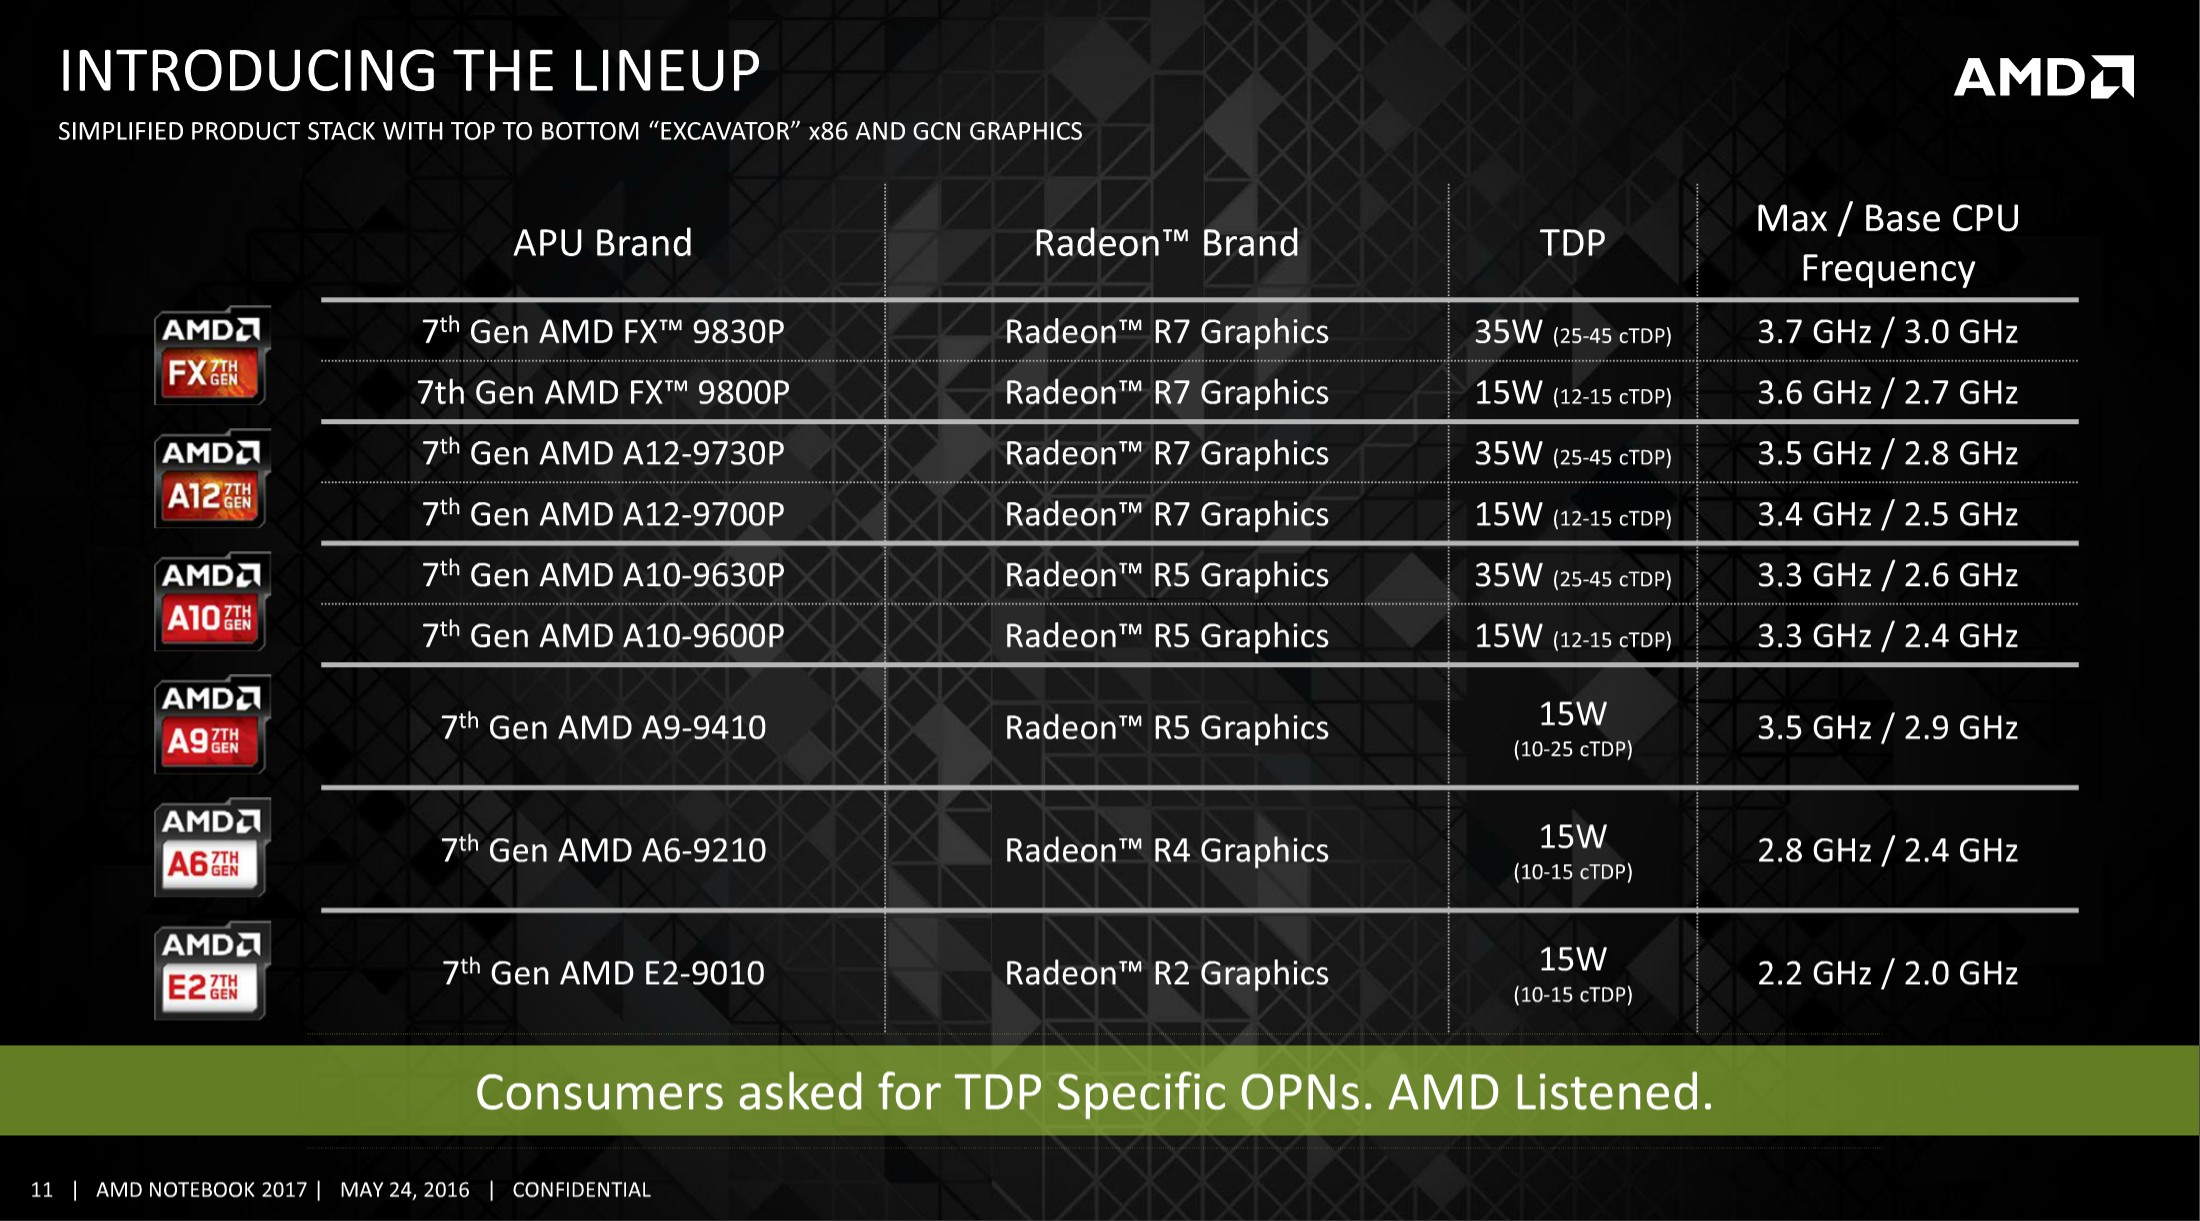 AMD Announces the 7th Generation APU: Excavator mk2 in